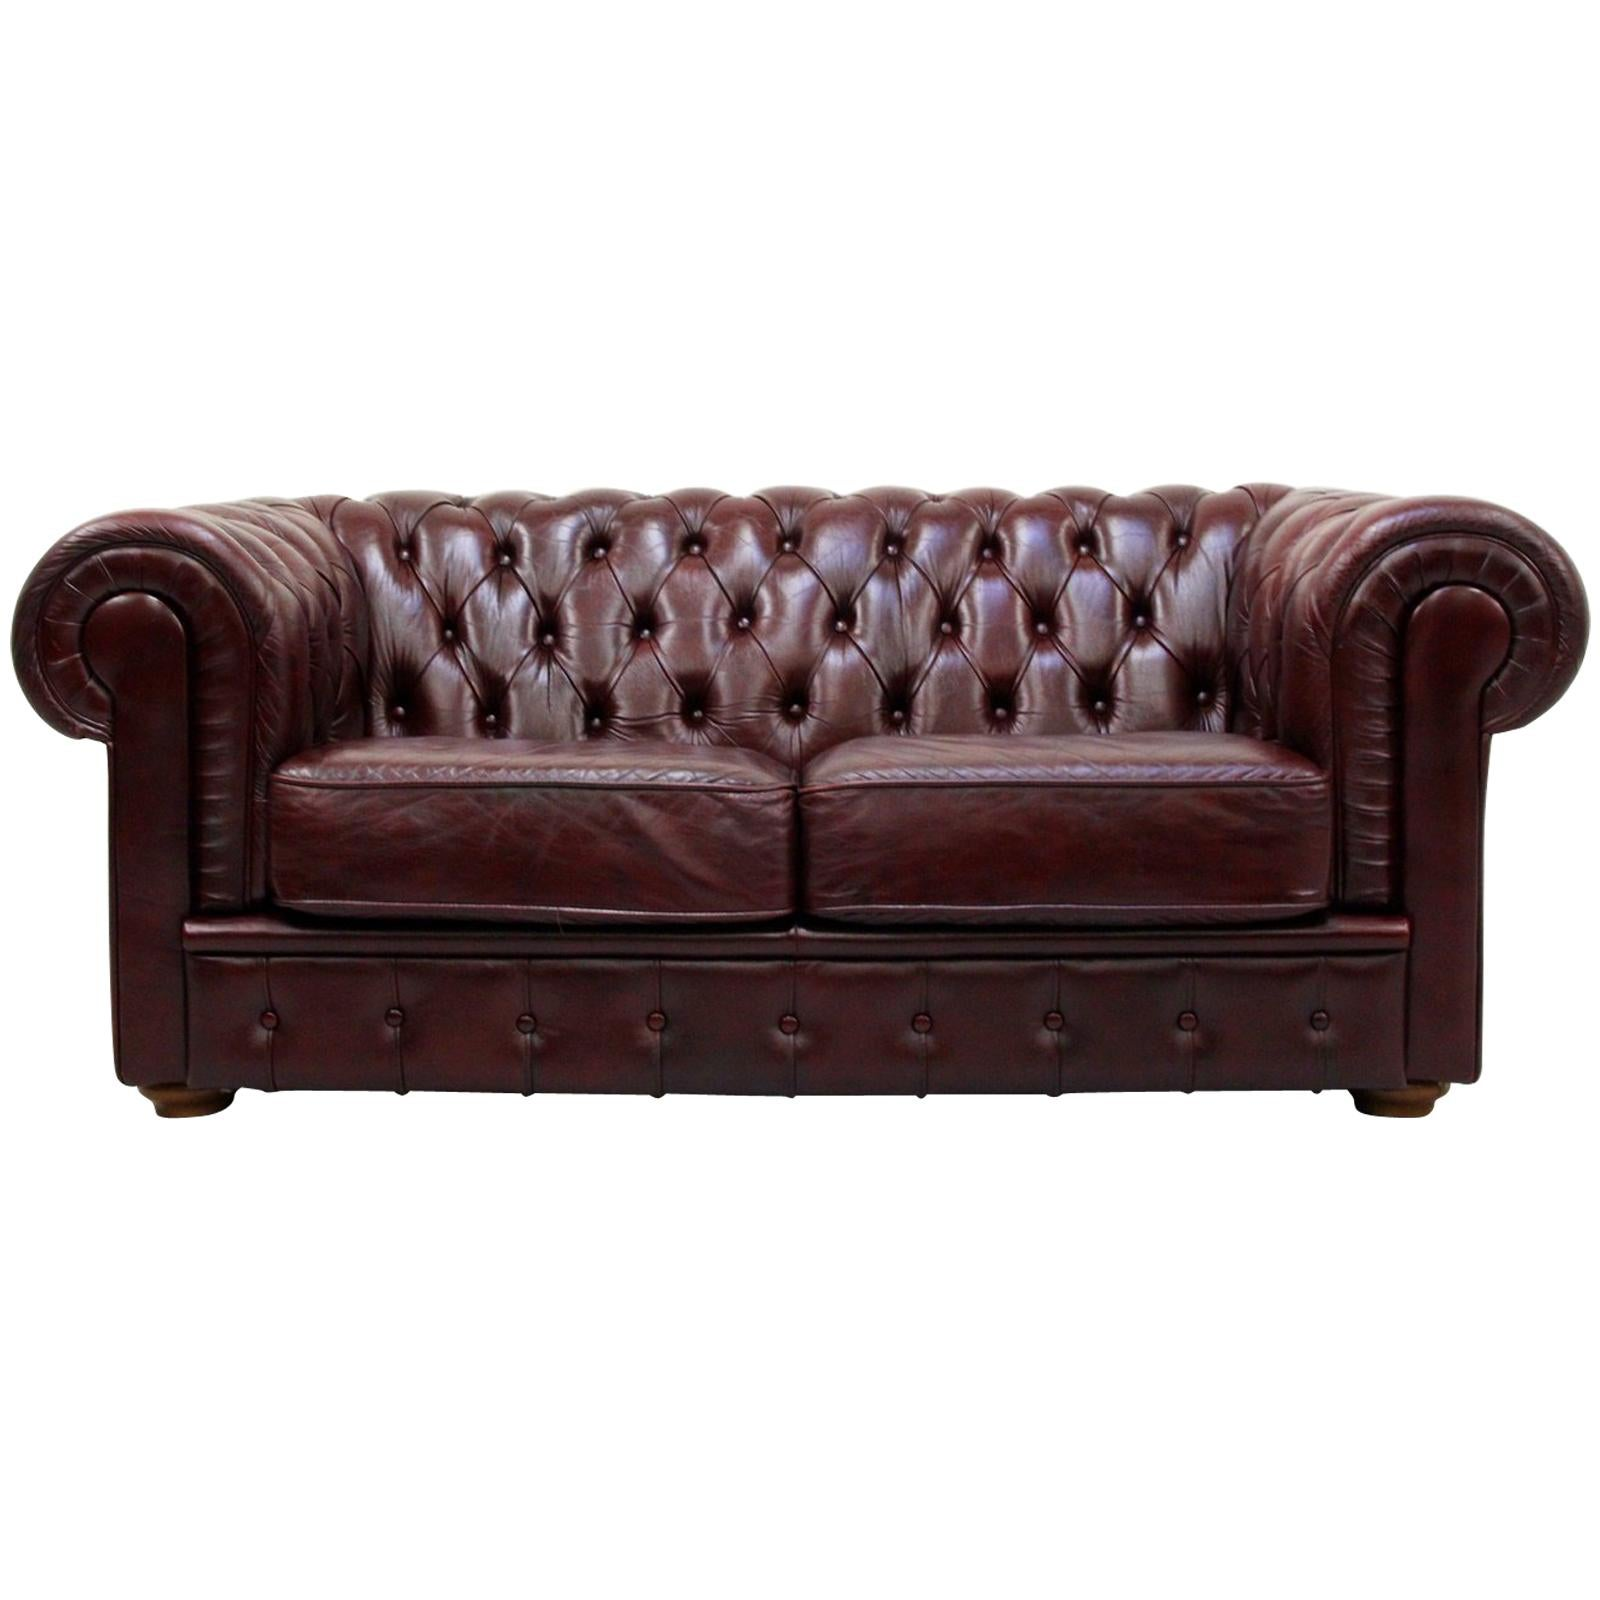 Vintage Couch Chesterfield English Sofa Leather Antique Vintage Couch Chippendale